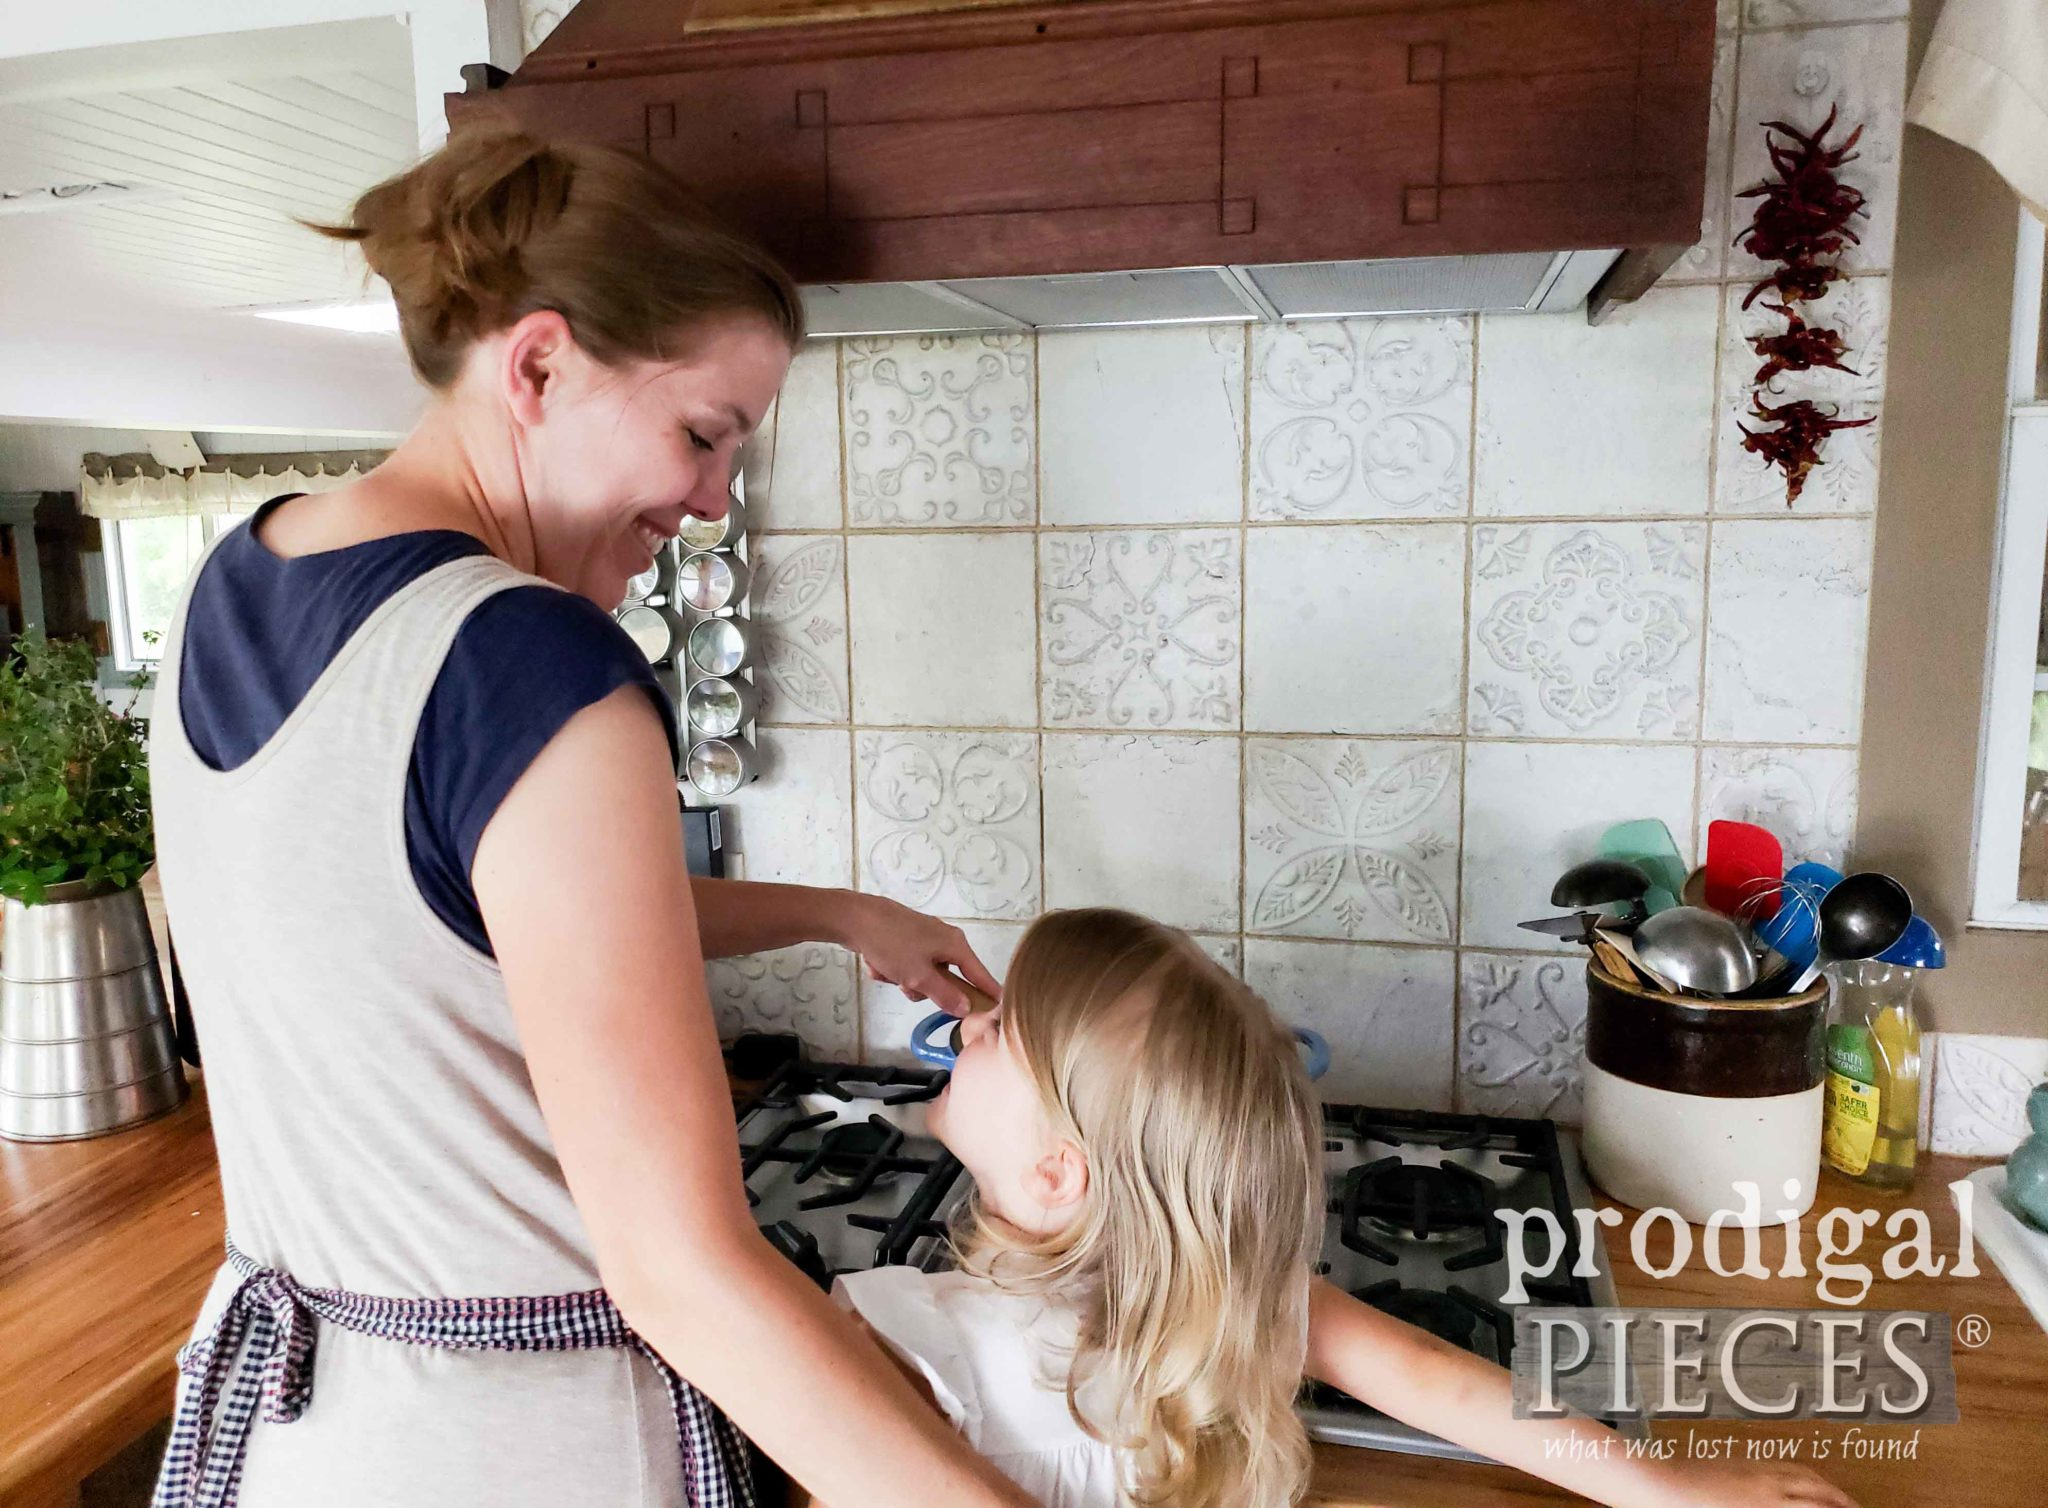 Mother & Daughter Cooking in Farmhouse Style Kitchen | by Larissa of Prodigal Pieces | prodigalpieces.com #prodigalpieces #diy #home #homedecor #handmade #kitchen #farmhouse